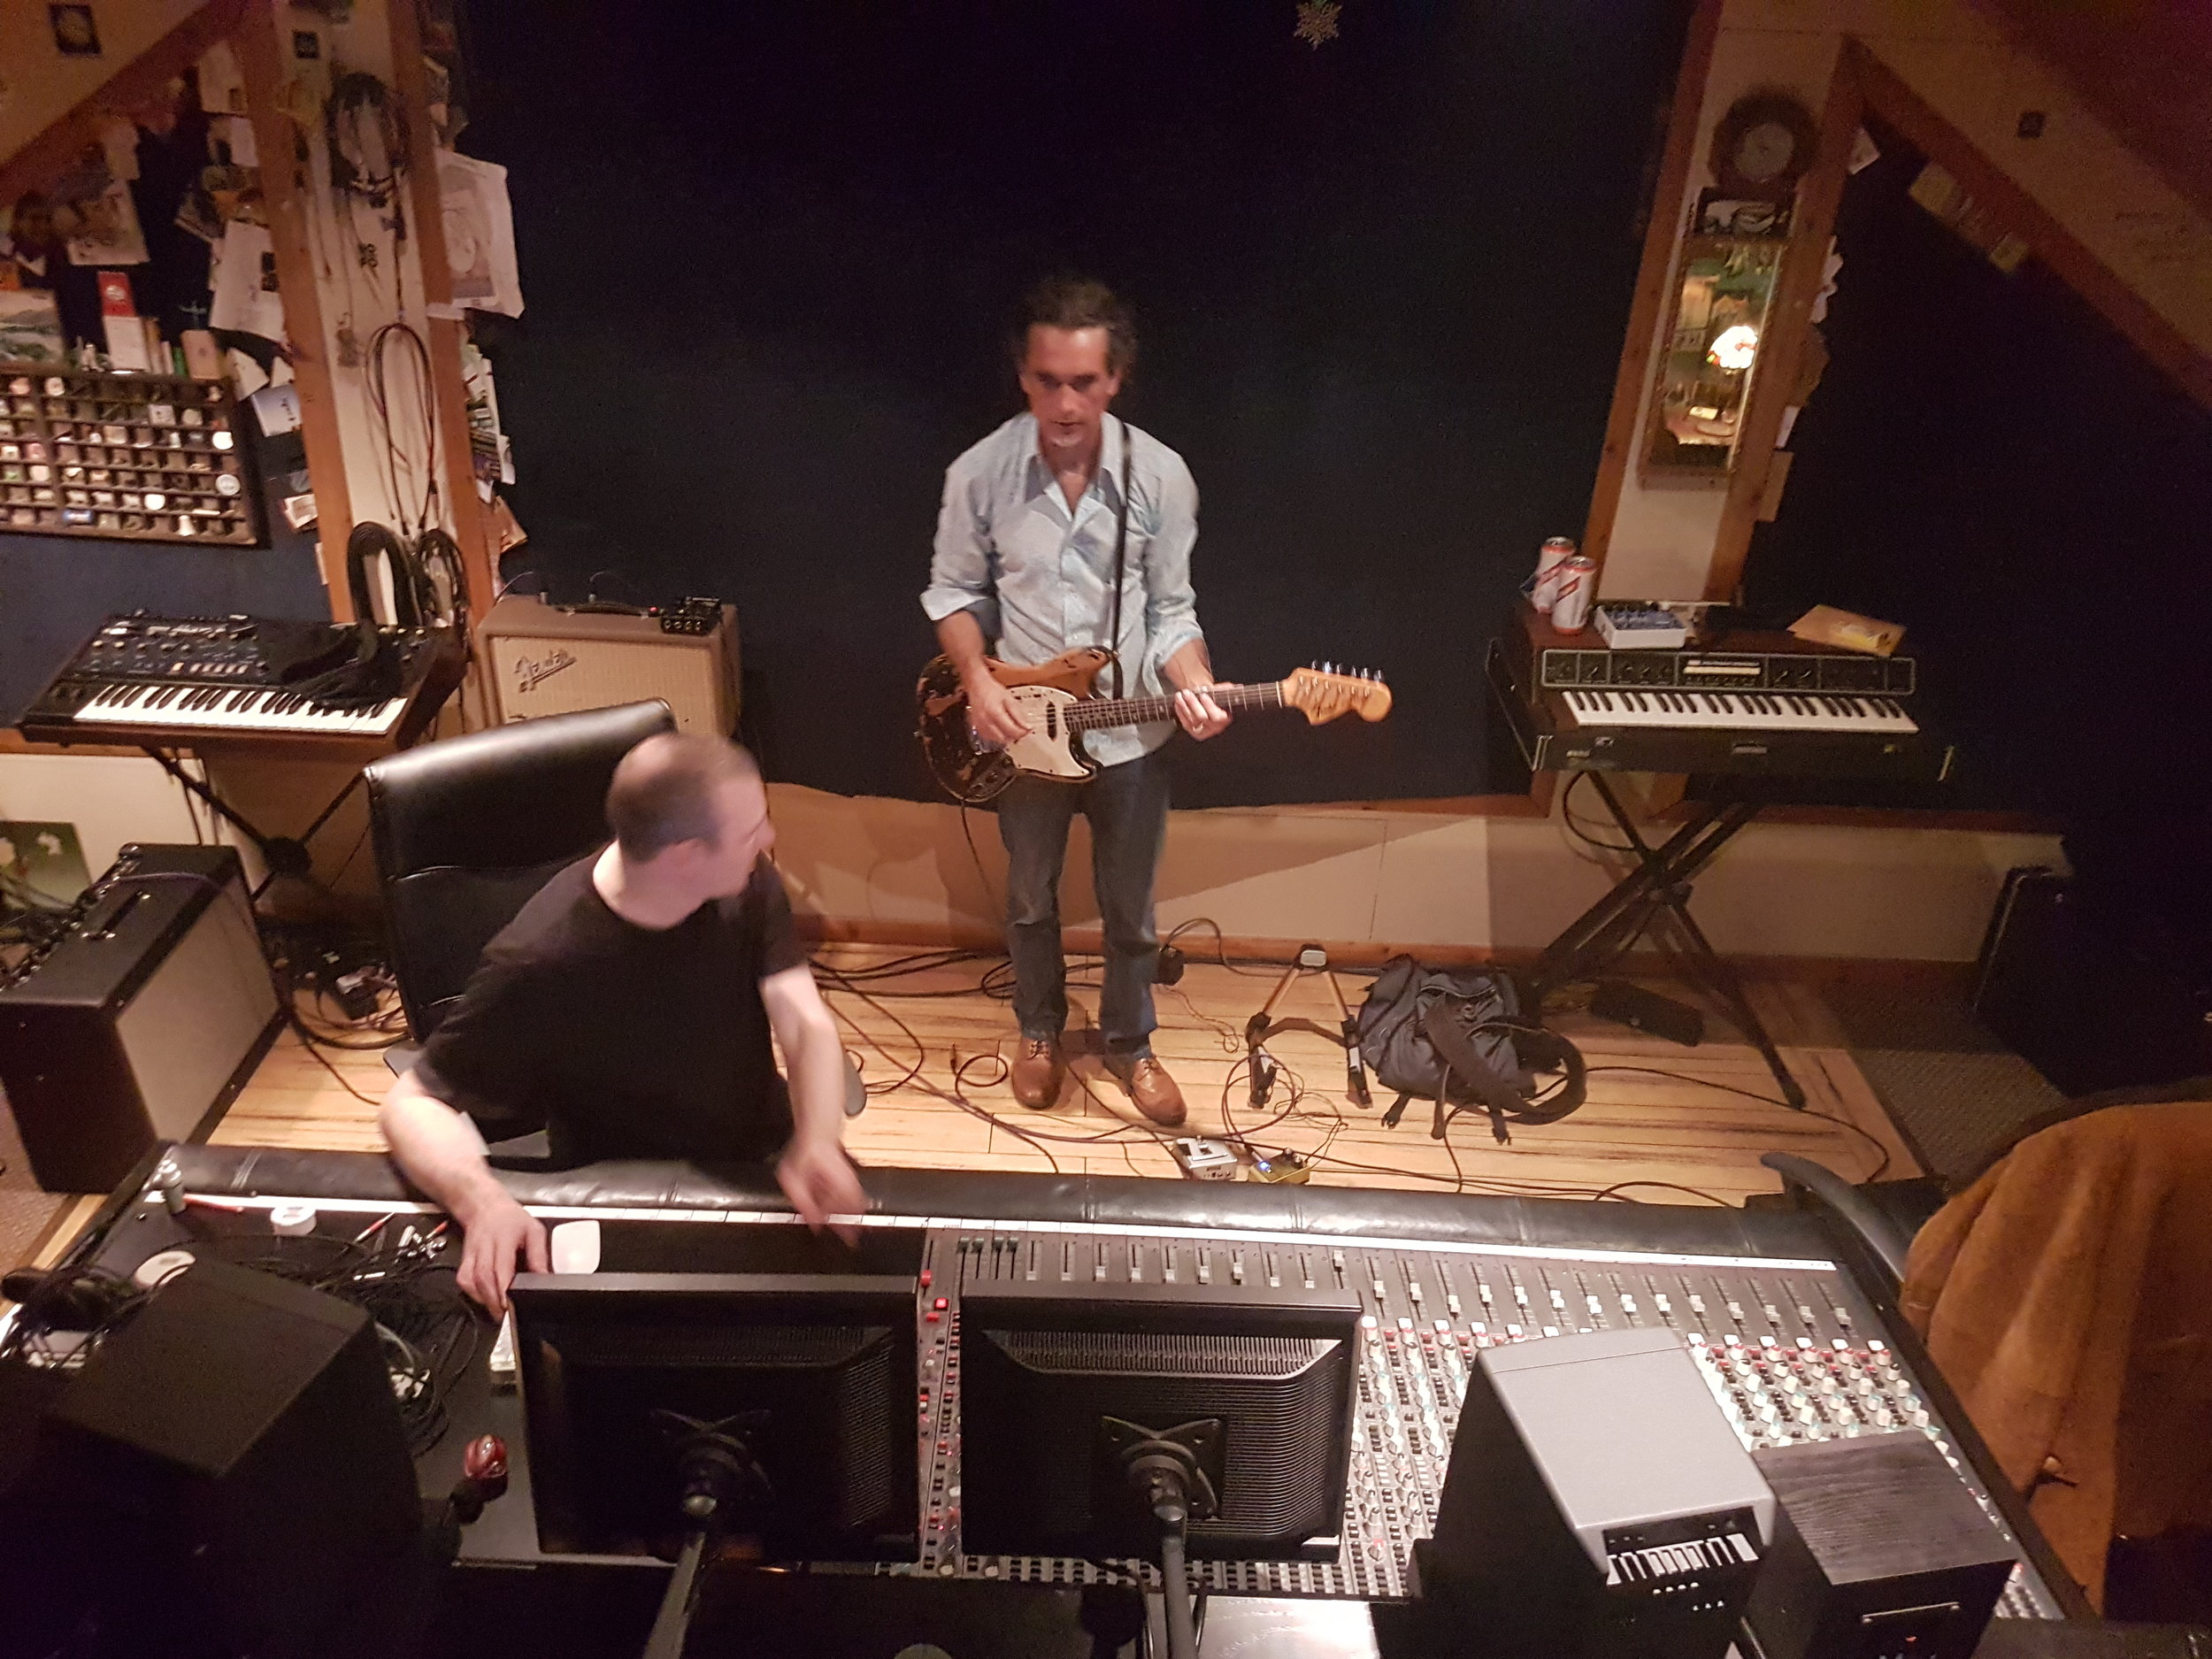 studio - The band are currently recording their next single,Warpath at the legendary Seamus Wong Studios, Leicester. Every thing is sounding huge, dark and stormy! Single and additional tracks will be released early 2018. More details soon.